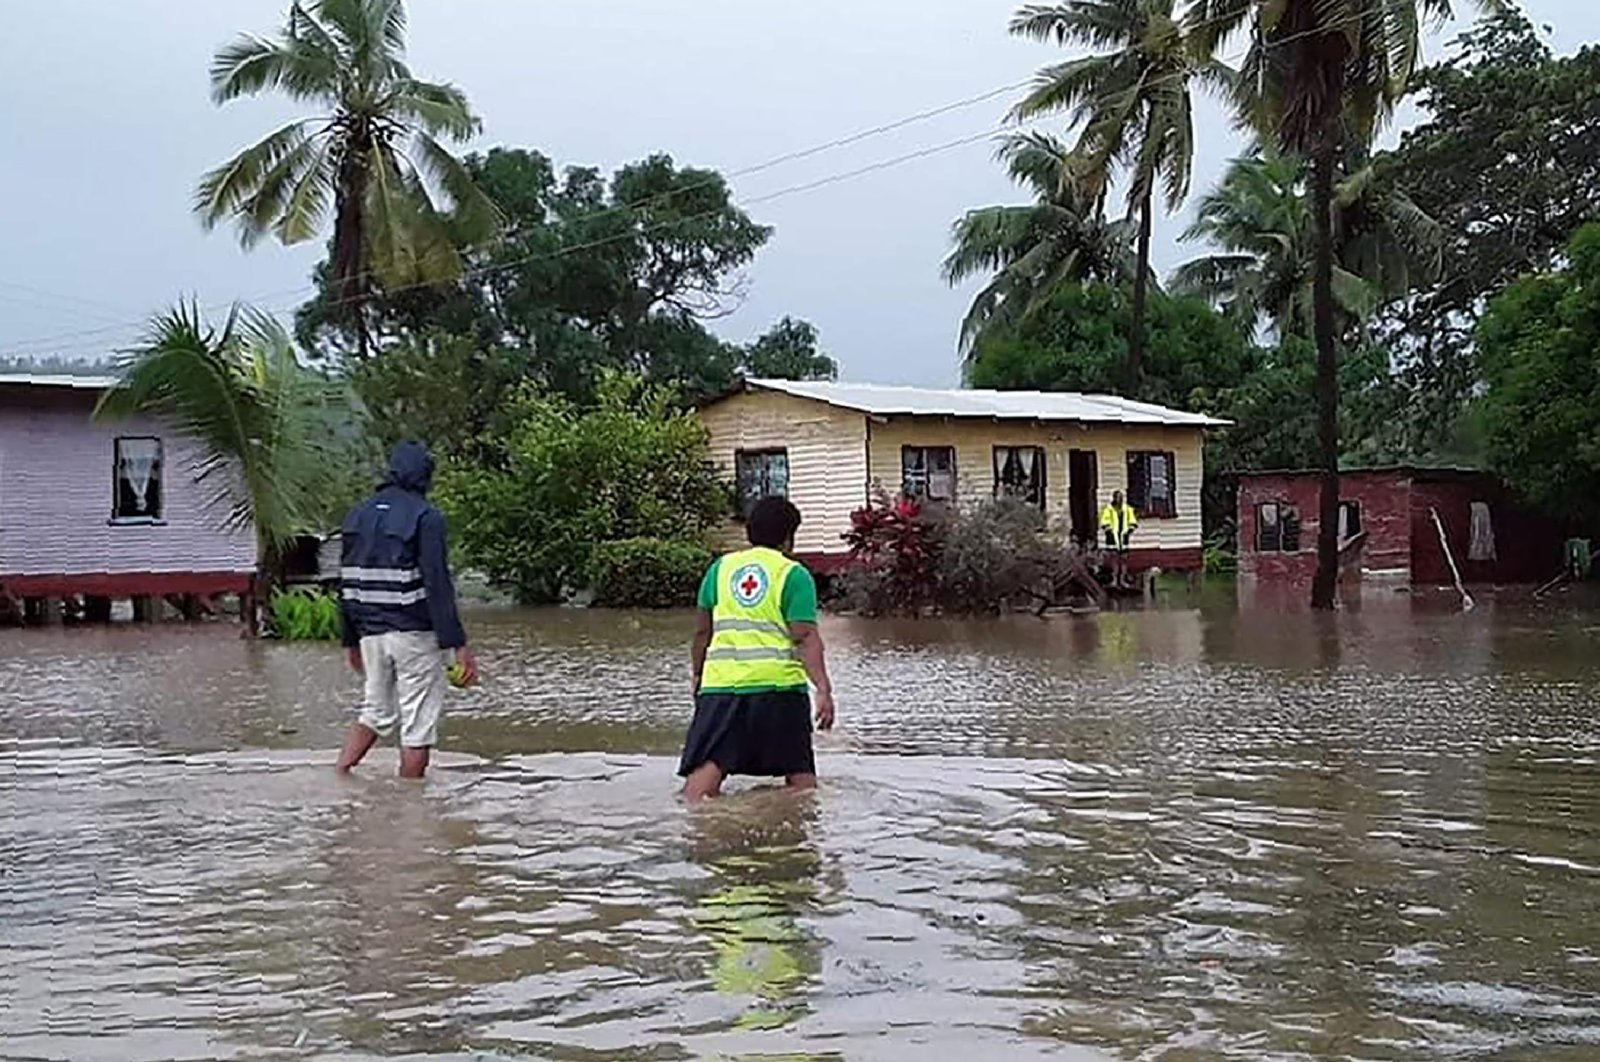 Rescue workers make their way through a village during flooding caused by Tropical Cyclone Harold in Nasolo in Fiji, Wednesday, April 8, 2020. (AFP Photo)